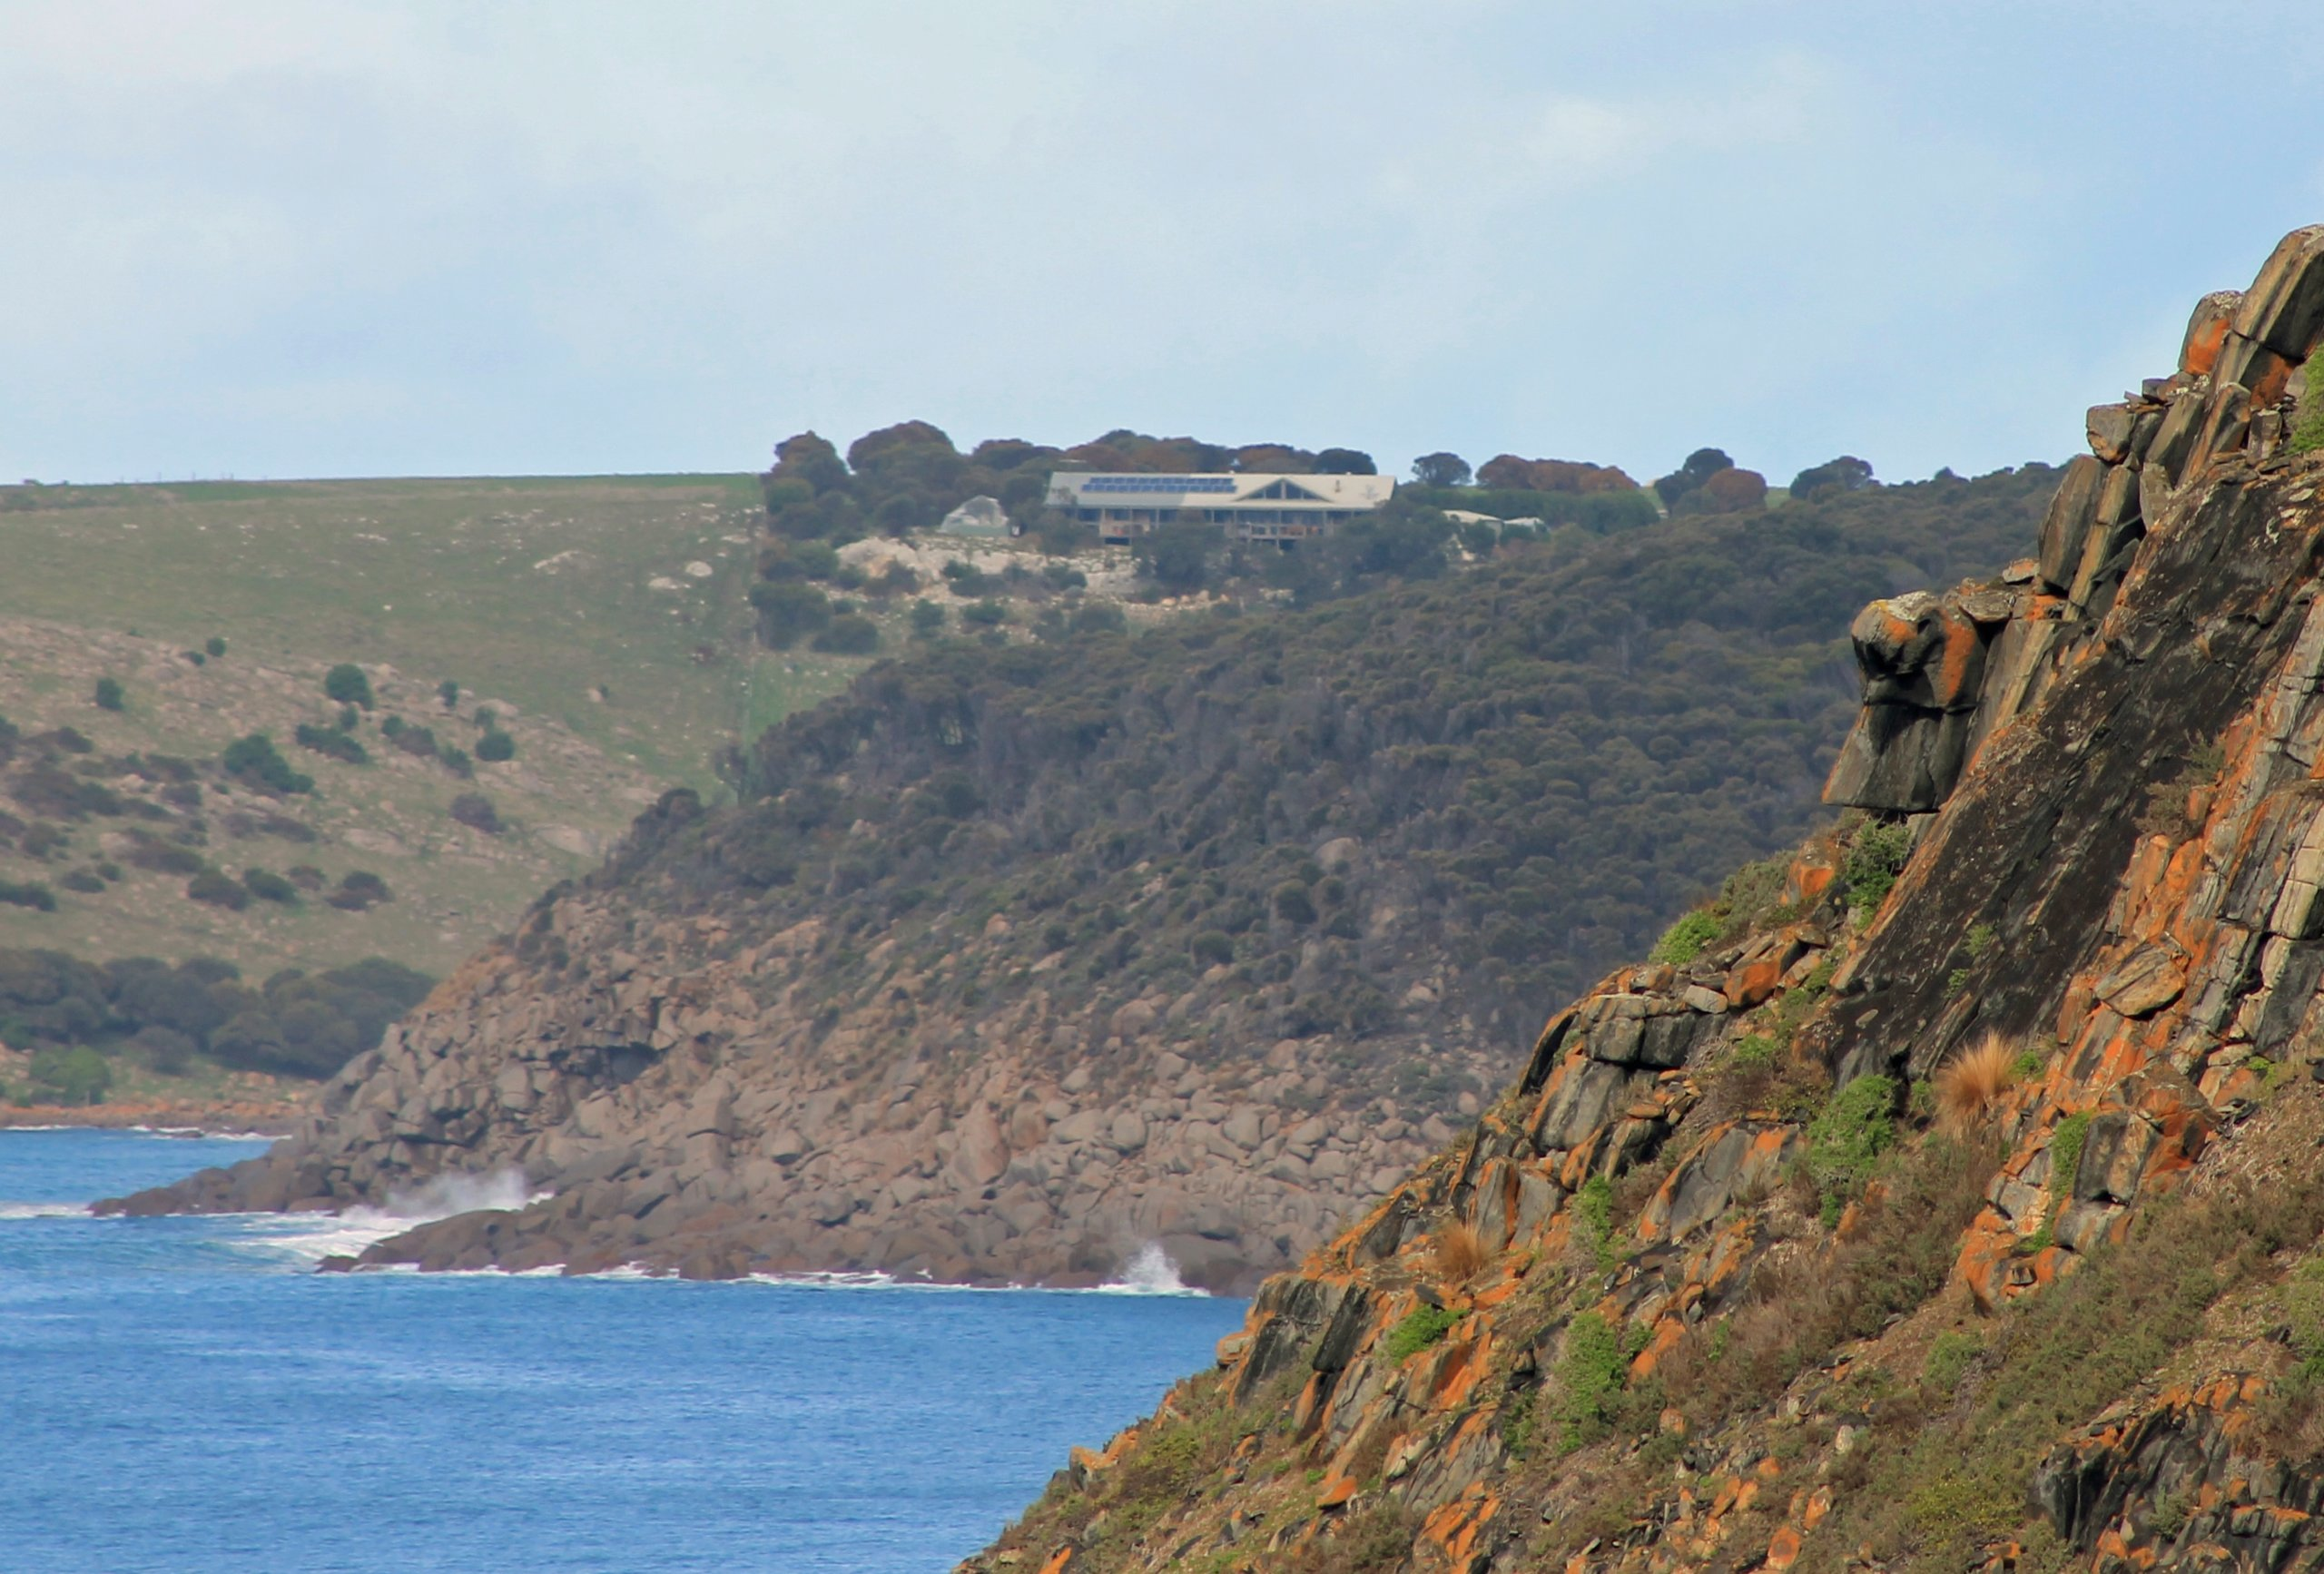 Luxury seafront accommodation on Kangaroo Island